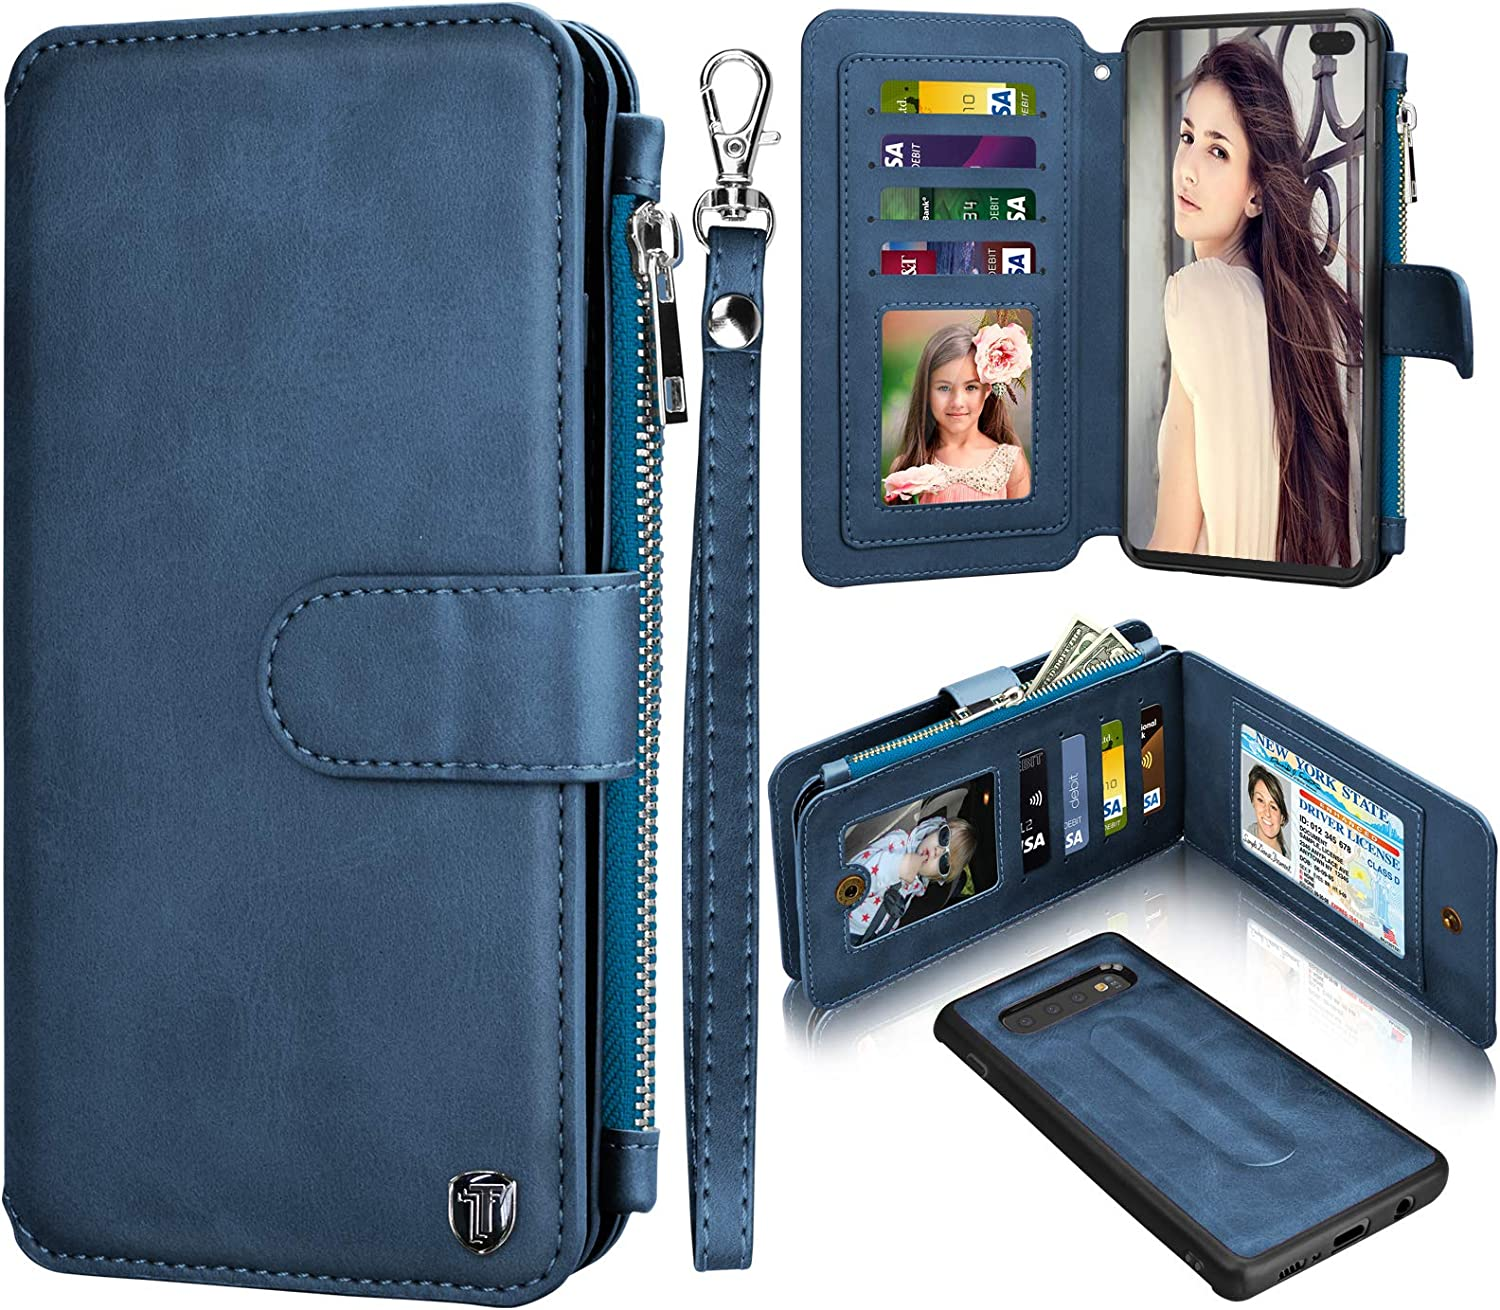 NJJEX Wallet Case for Samsung Galaxy S10 Plus, for Galaxy S10+ S10 Plus Case, PU Leather ID Credit Card Slots Holder Zipper Money Purse Pocket Magnetic Detachable Folio Flip Phone Cover [Dark Blue]